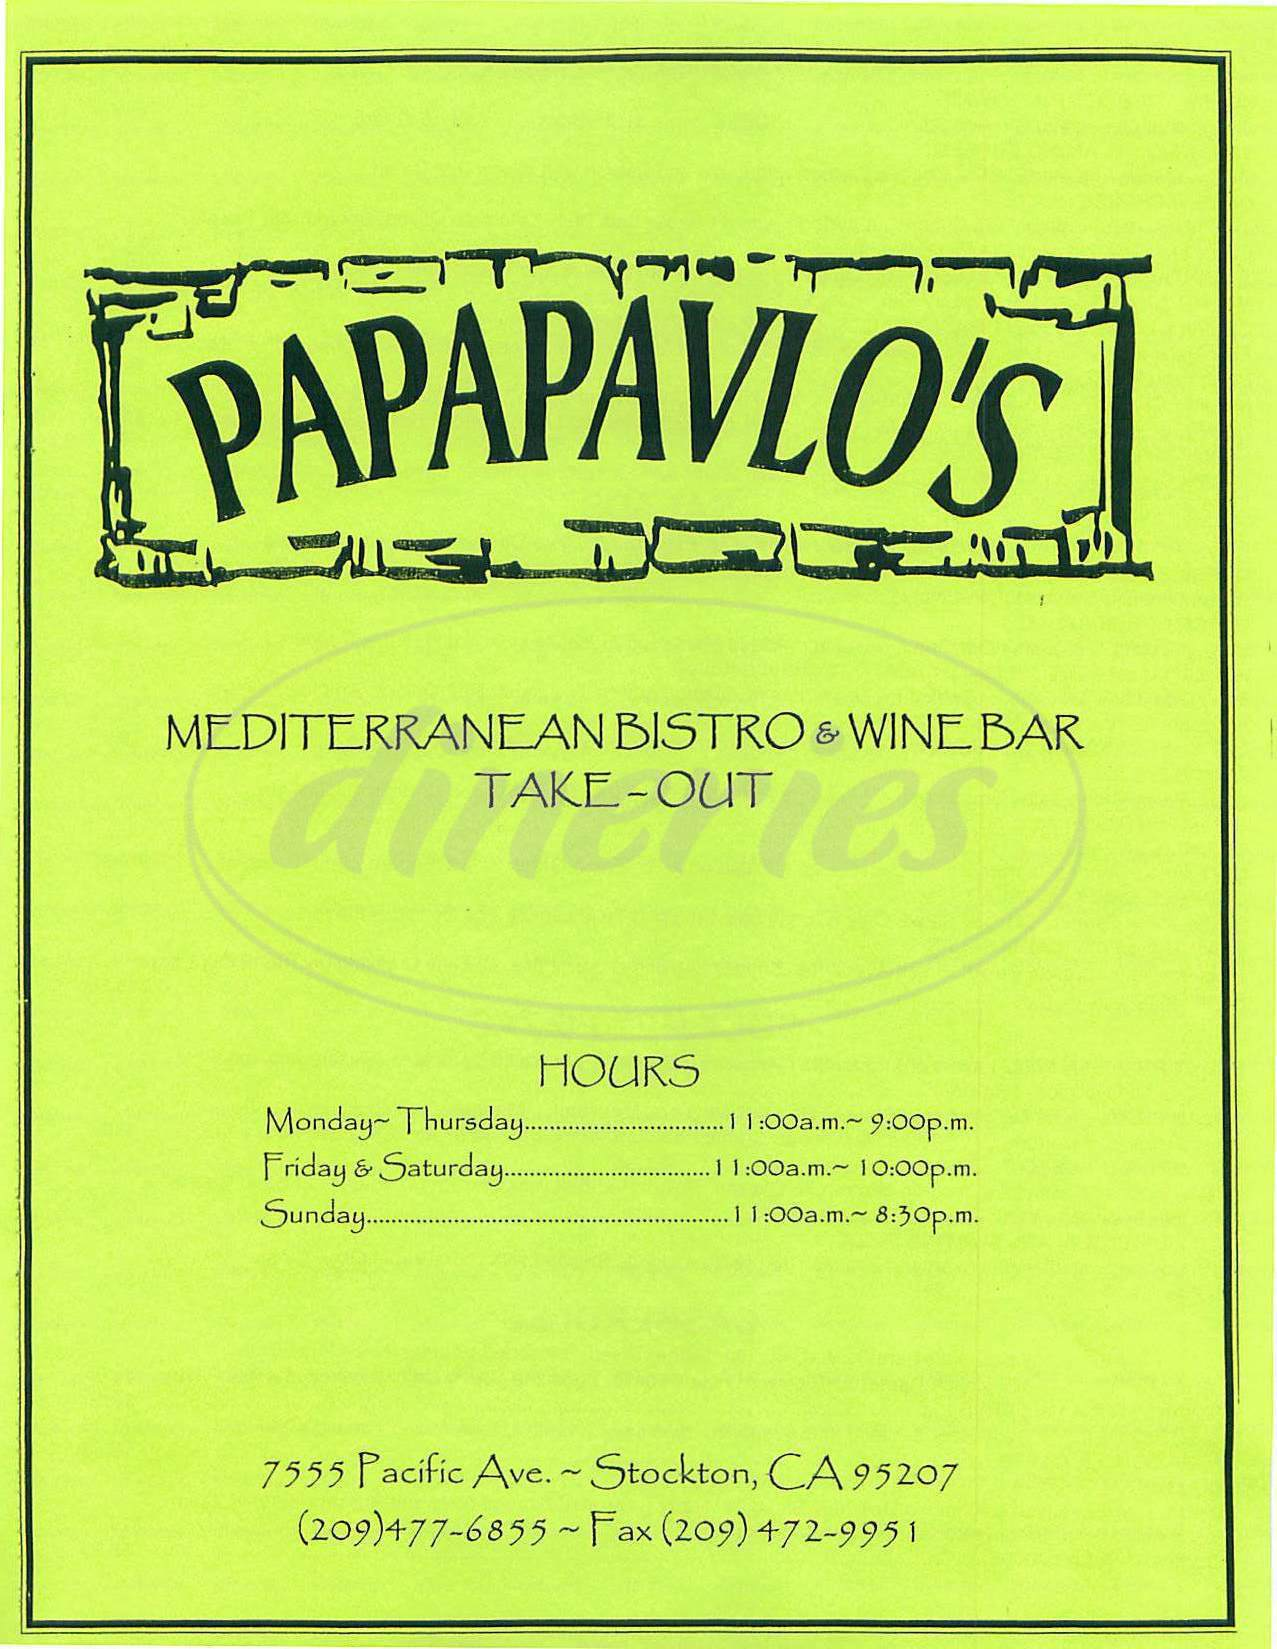 menu for Papapavlos Mediterranean Bistro